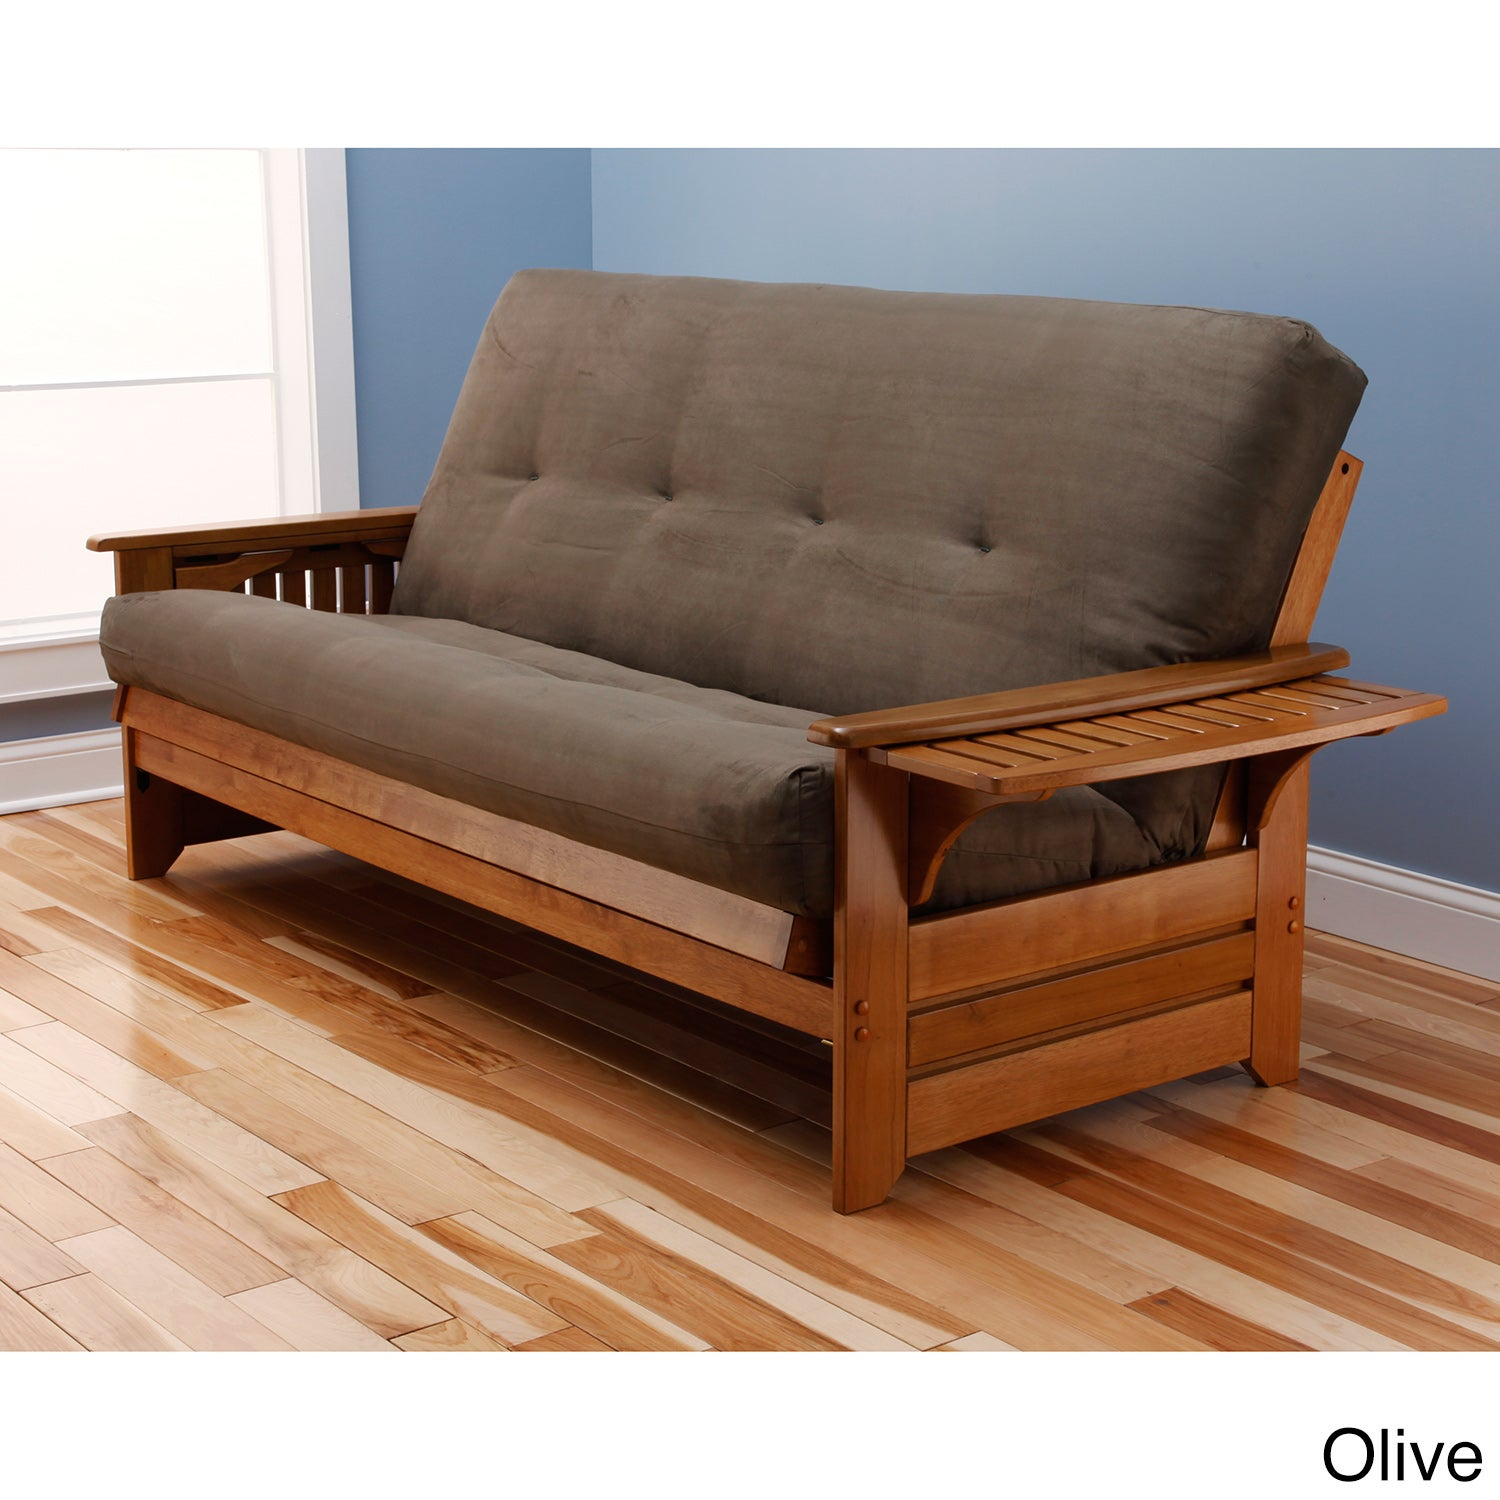 futon wood wooden transformable furniture size full solid frame ideas capricornradio